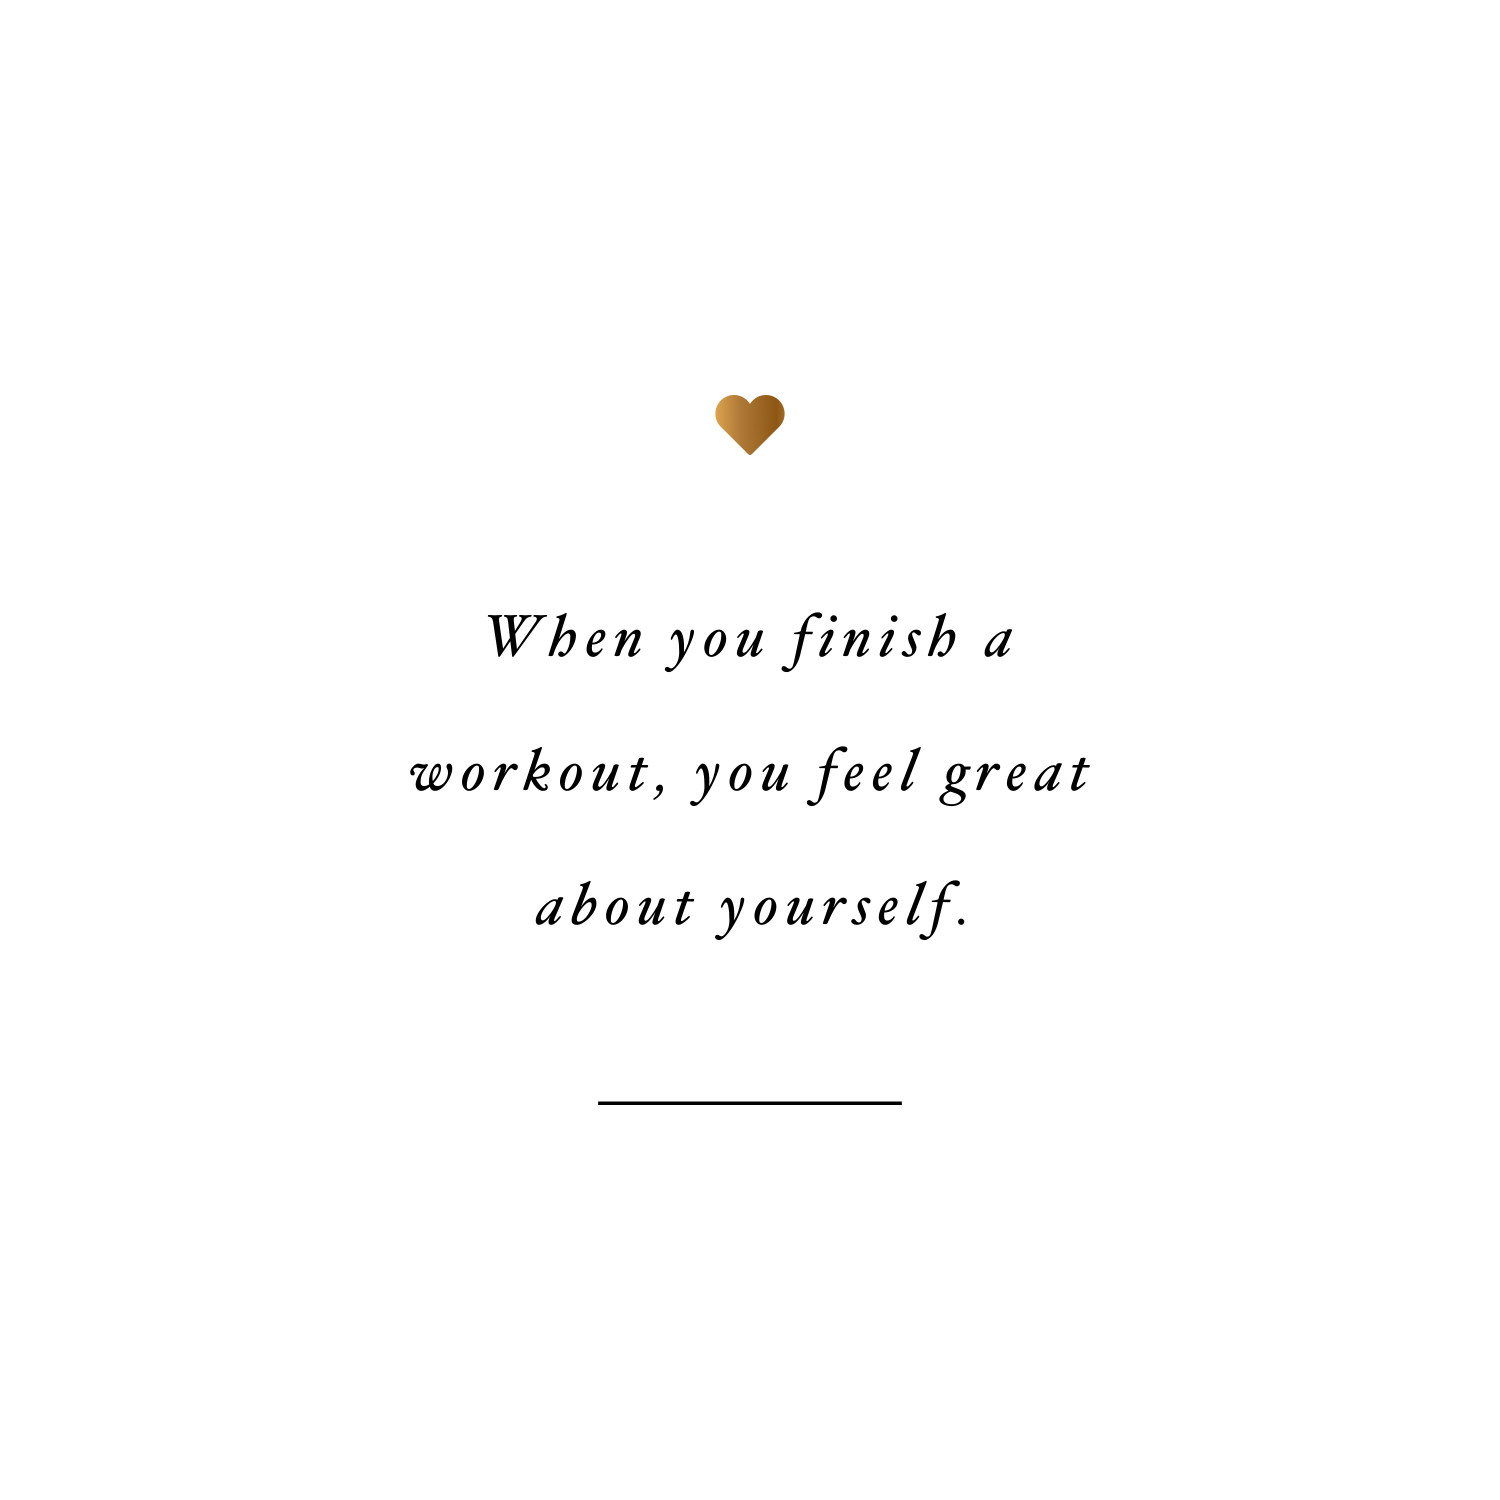 Feel great! Browse our collection of inspirational exercise quotes and get instant workout and fitness motivation. Transform positive thoughts into positive actions and get fit, healthy and happy! https://www.spotebi.com/workout-motivation/exercise-quote-feel-great/